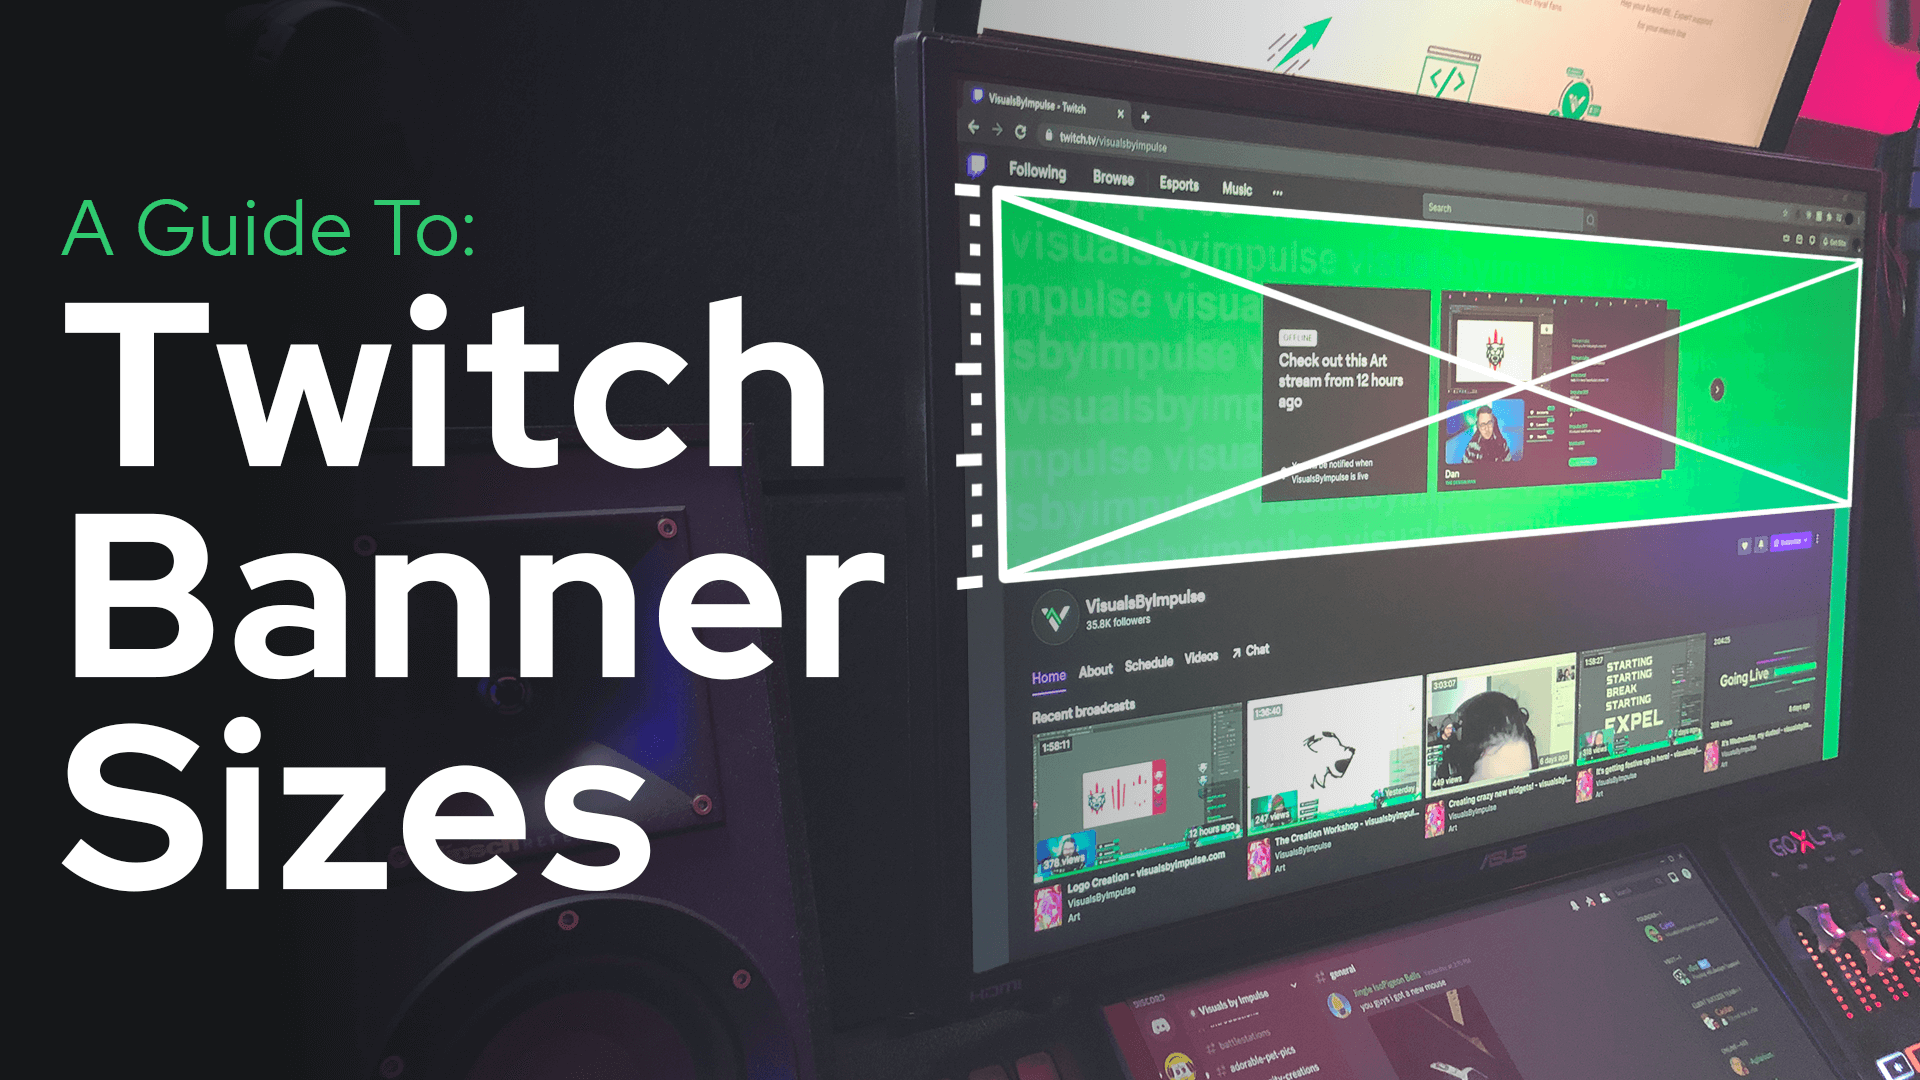 A guide to twitch banner sizes